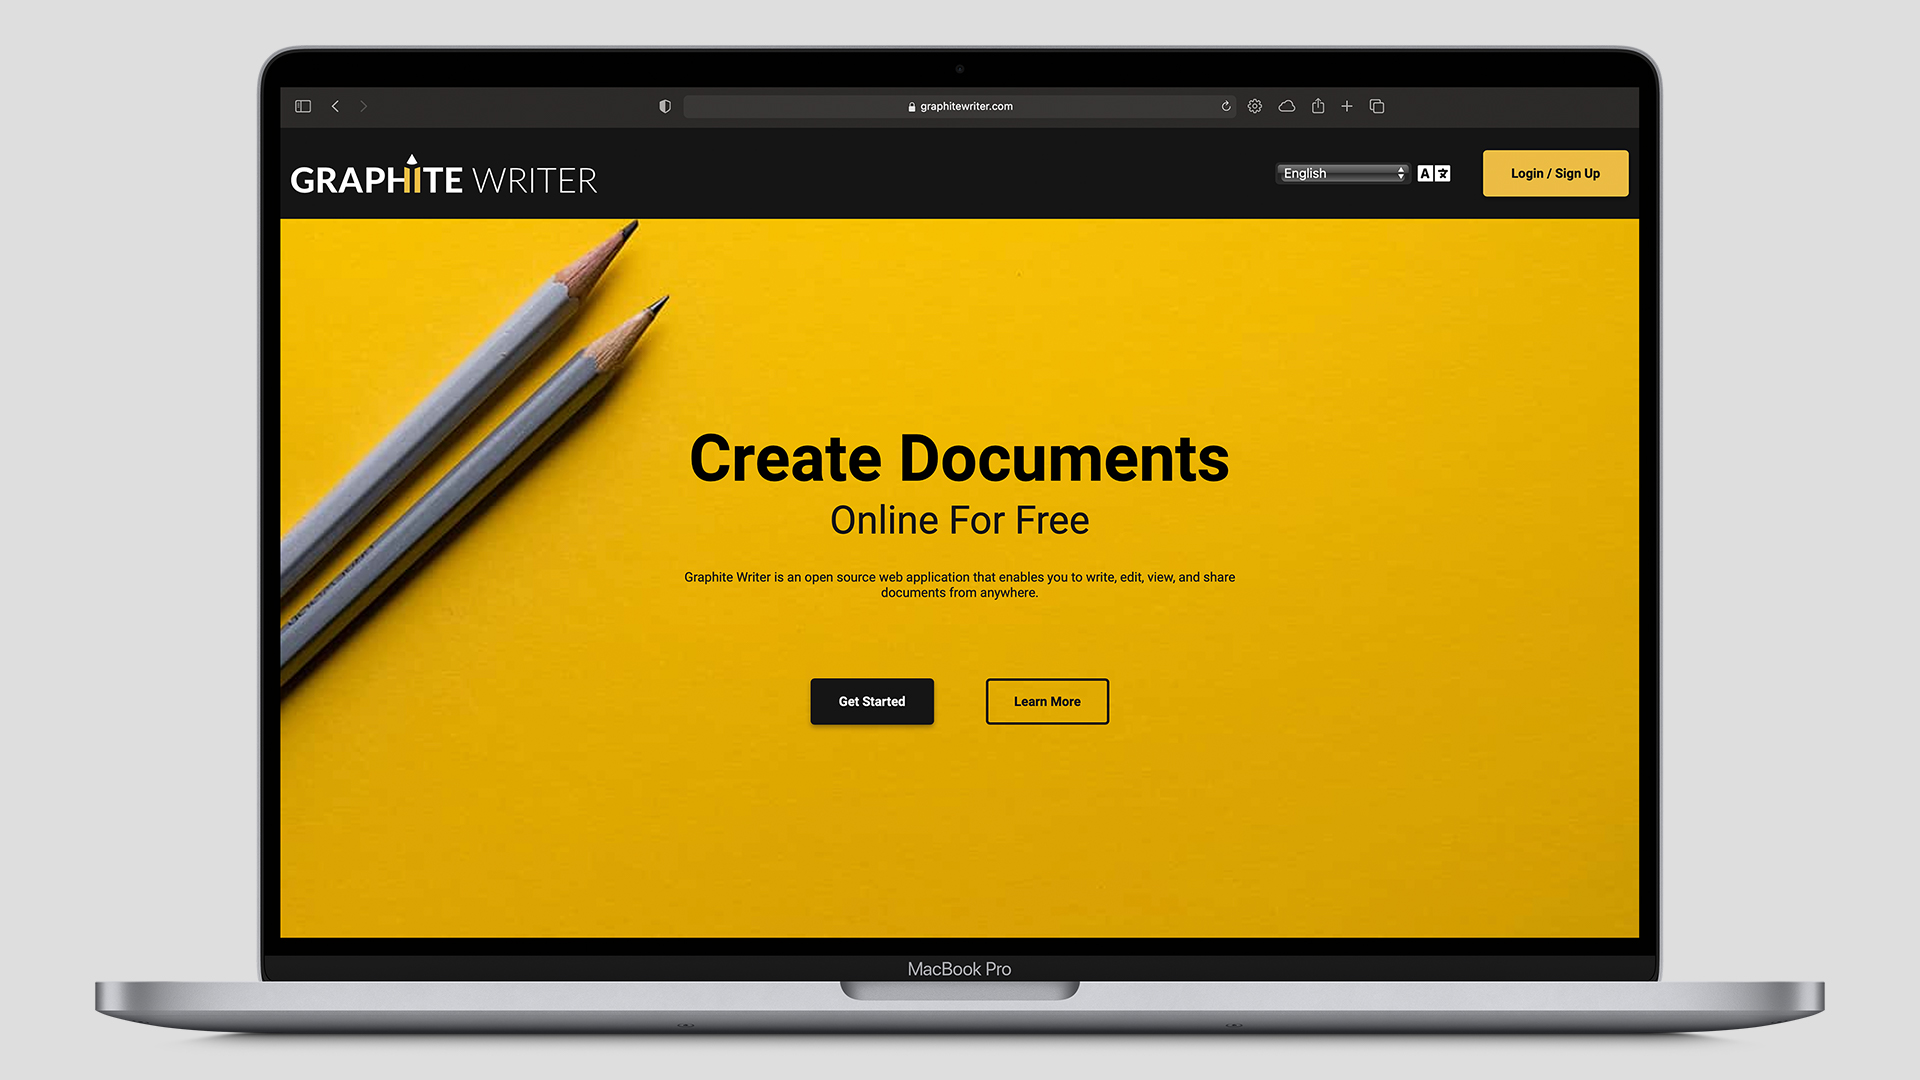 Graphite Writer Home Page